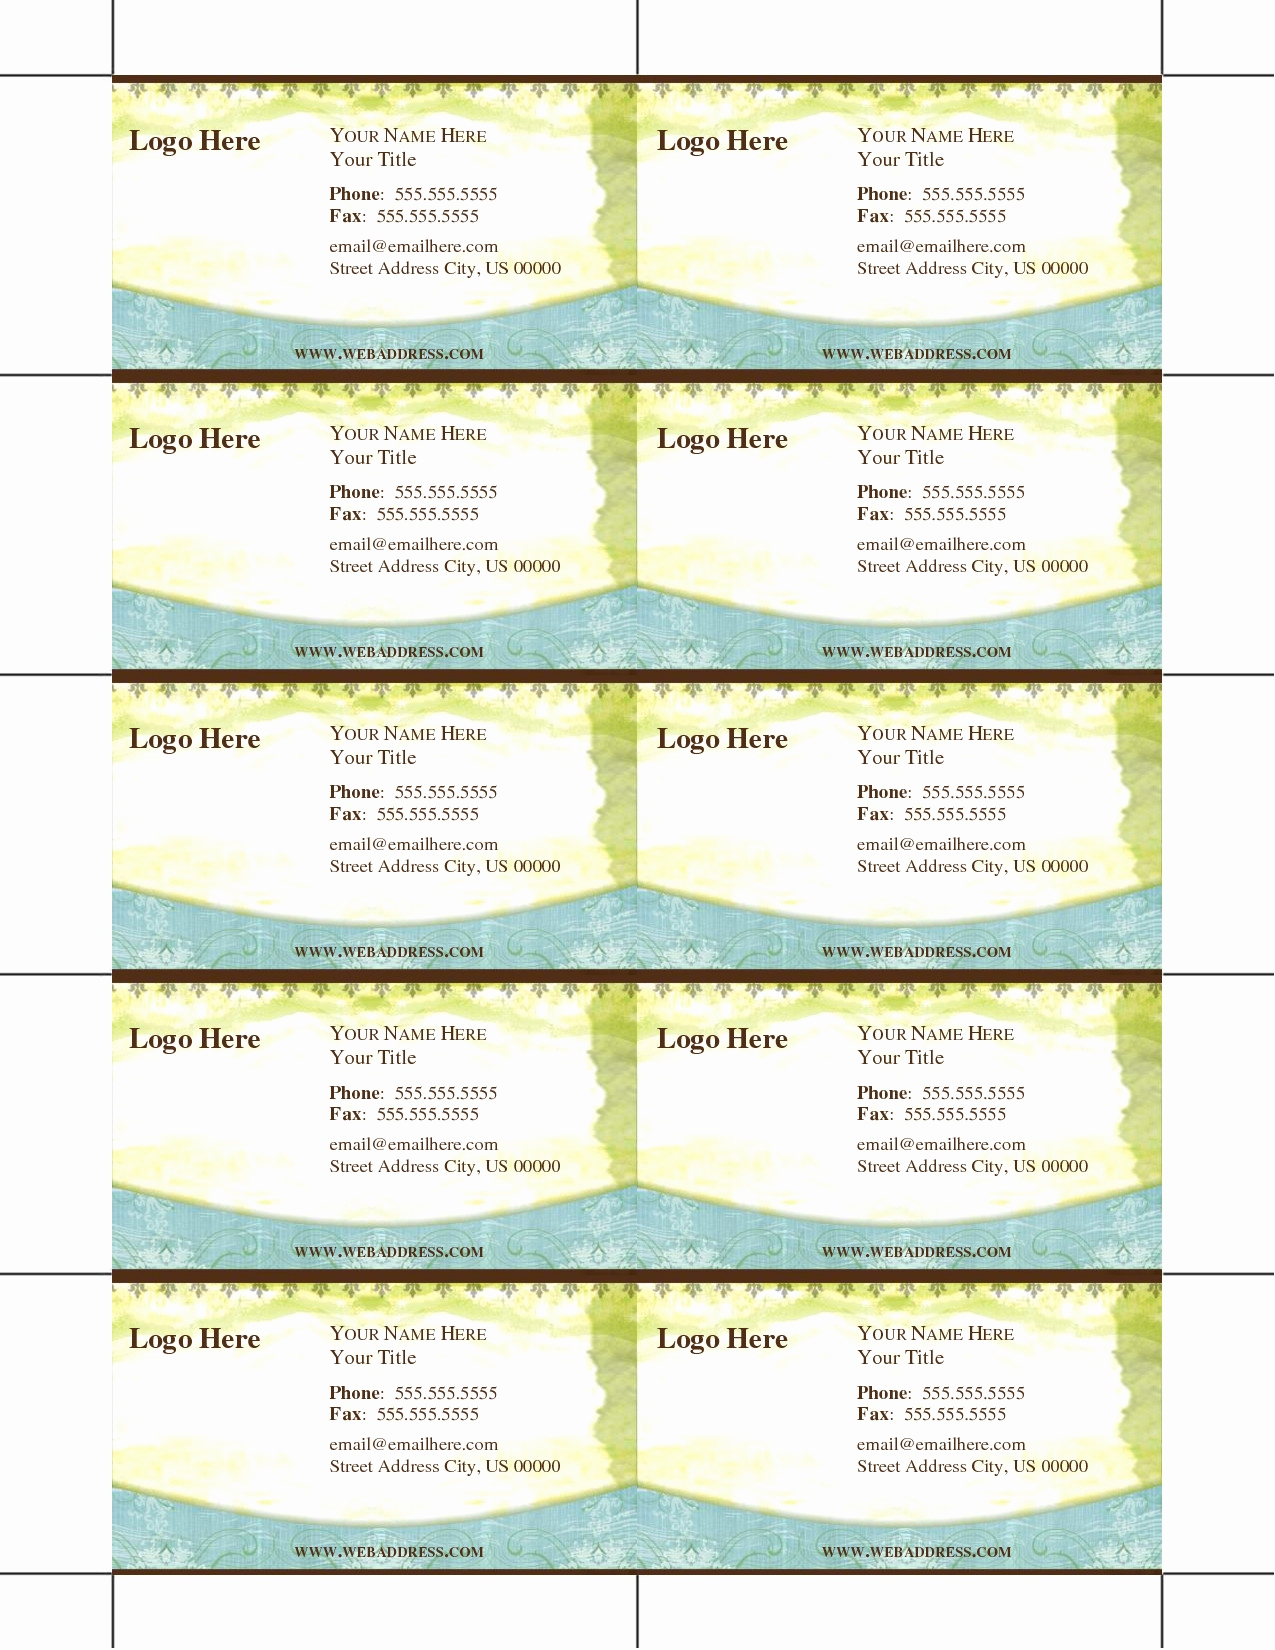 Printable Business Cards Online Inspirational Free Printable - Free Printable Business Cards